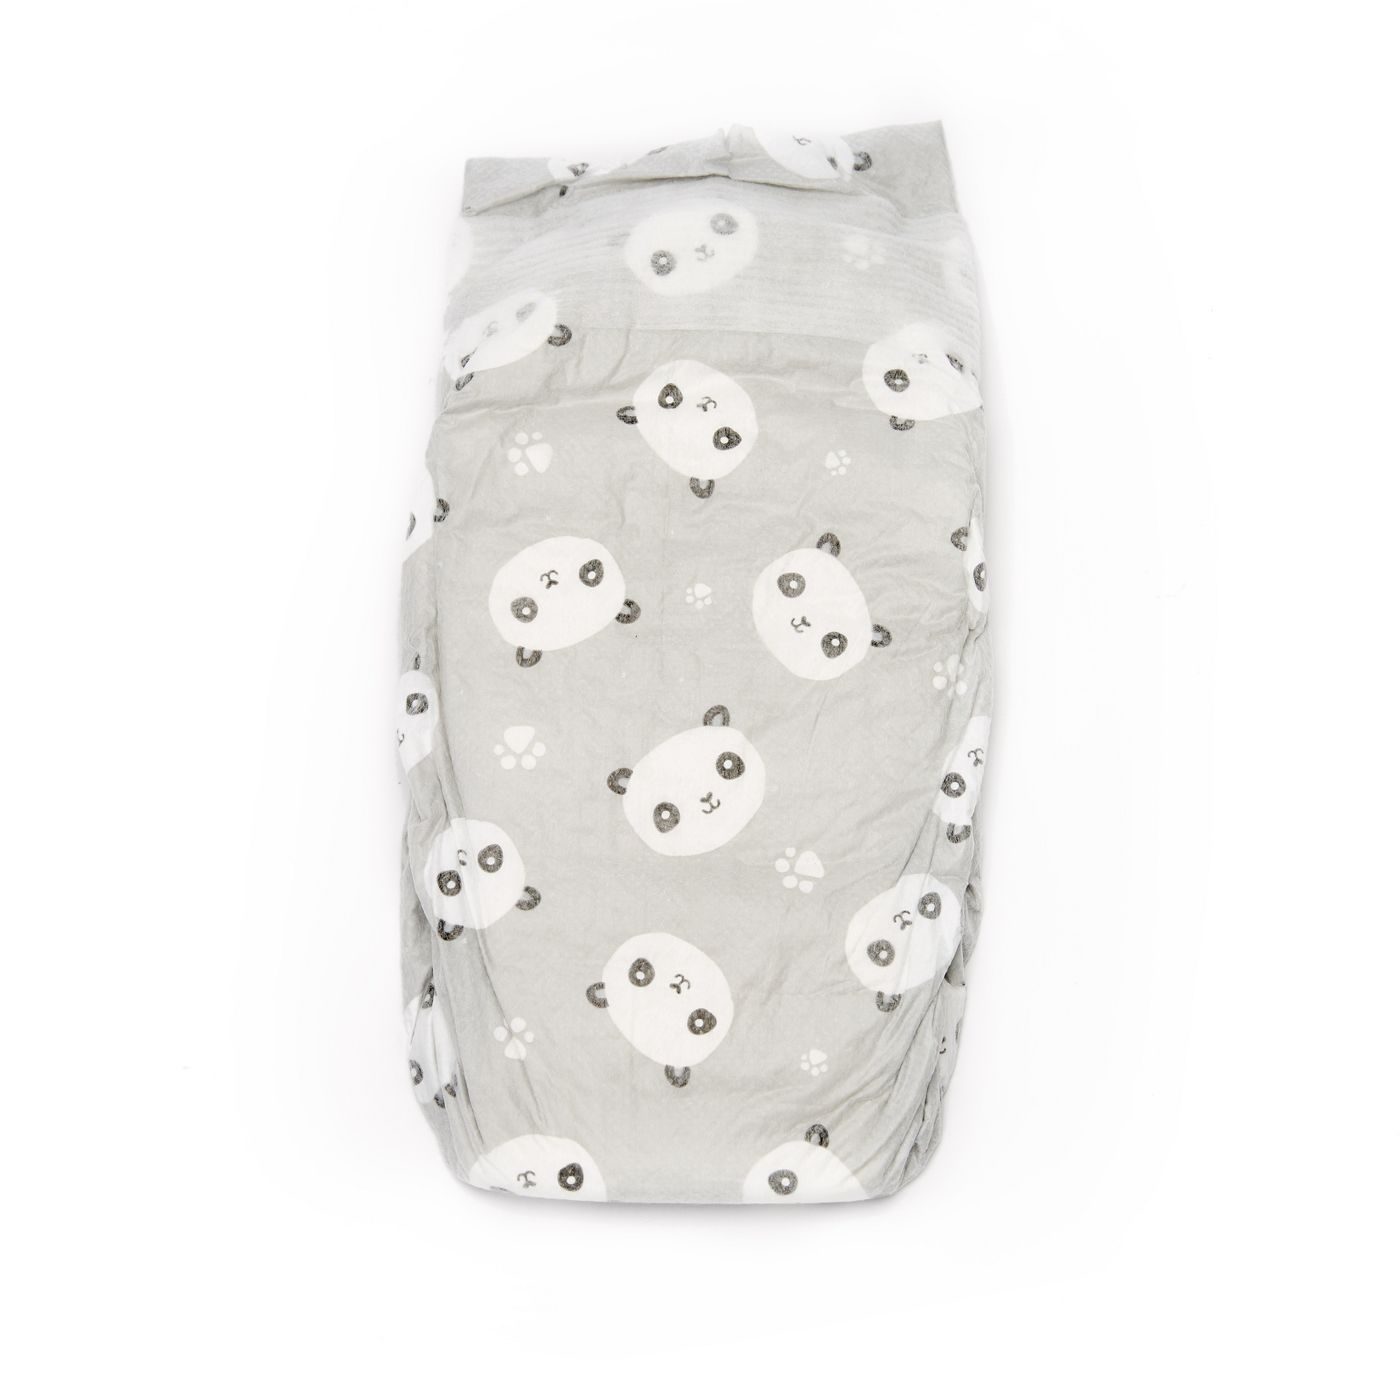 $26 | Diapers